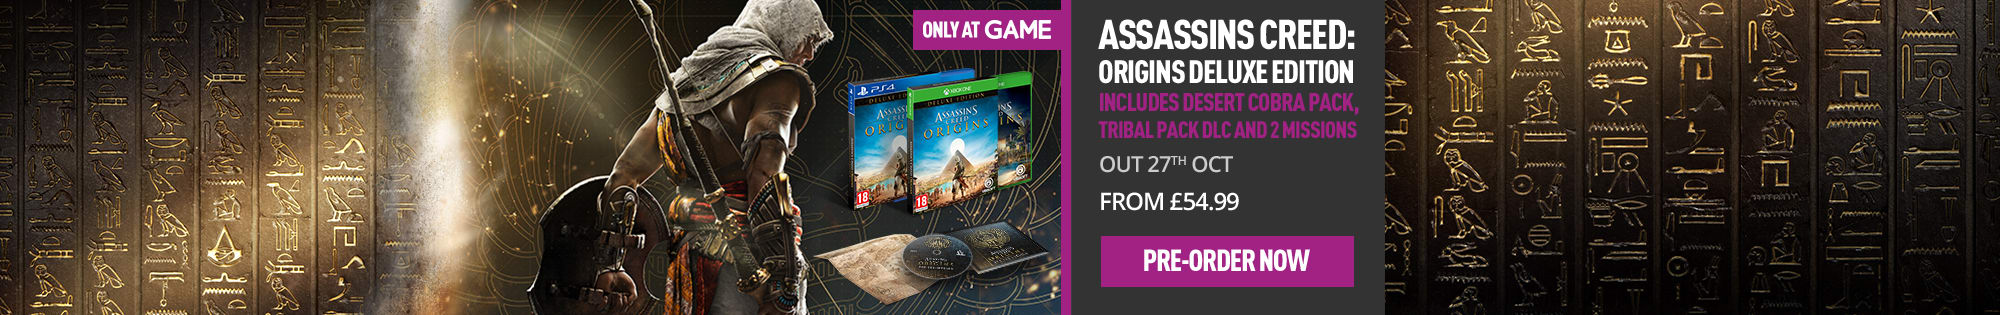 Assassin's Creed Origins - Deluxe Edition Only at GAME - Homepage banner